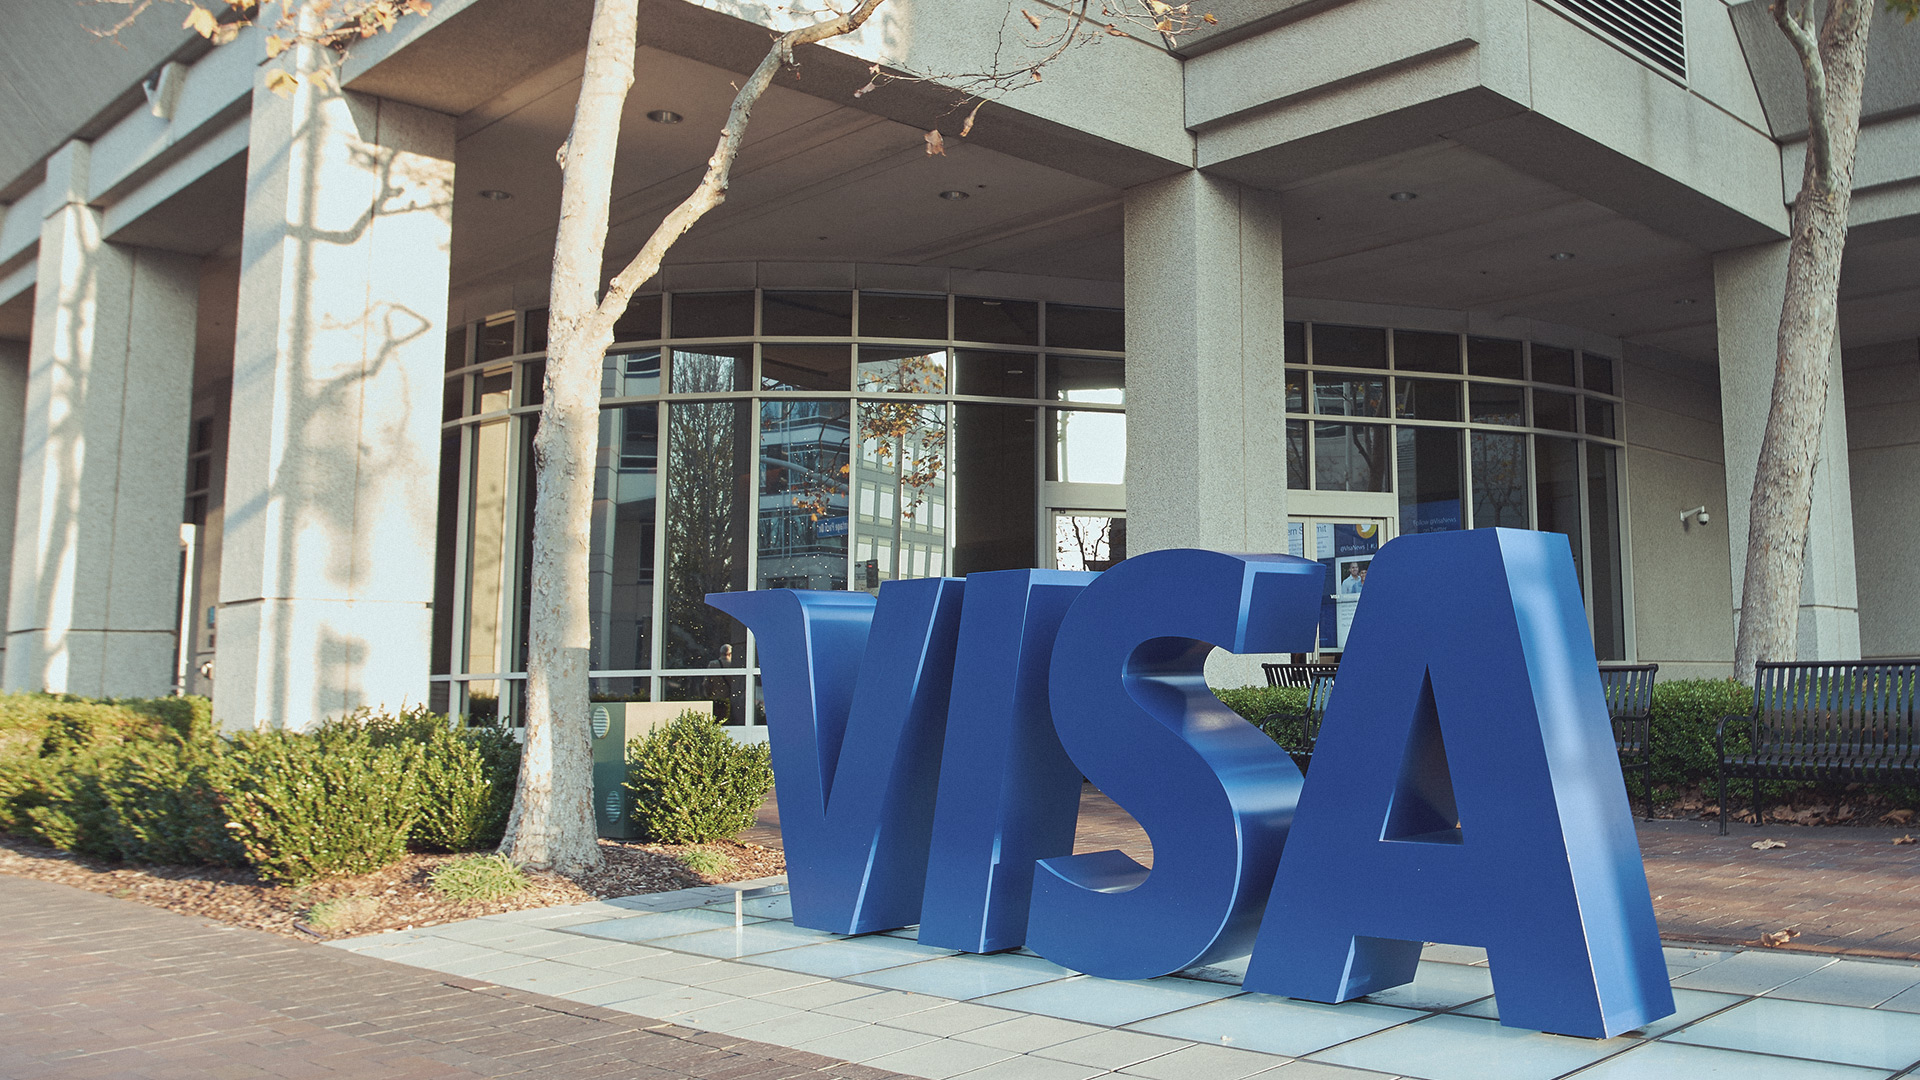 Visa buys a CryptoPunk as it takes first steps into 'NFT commerce'